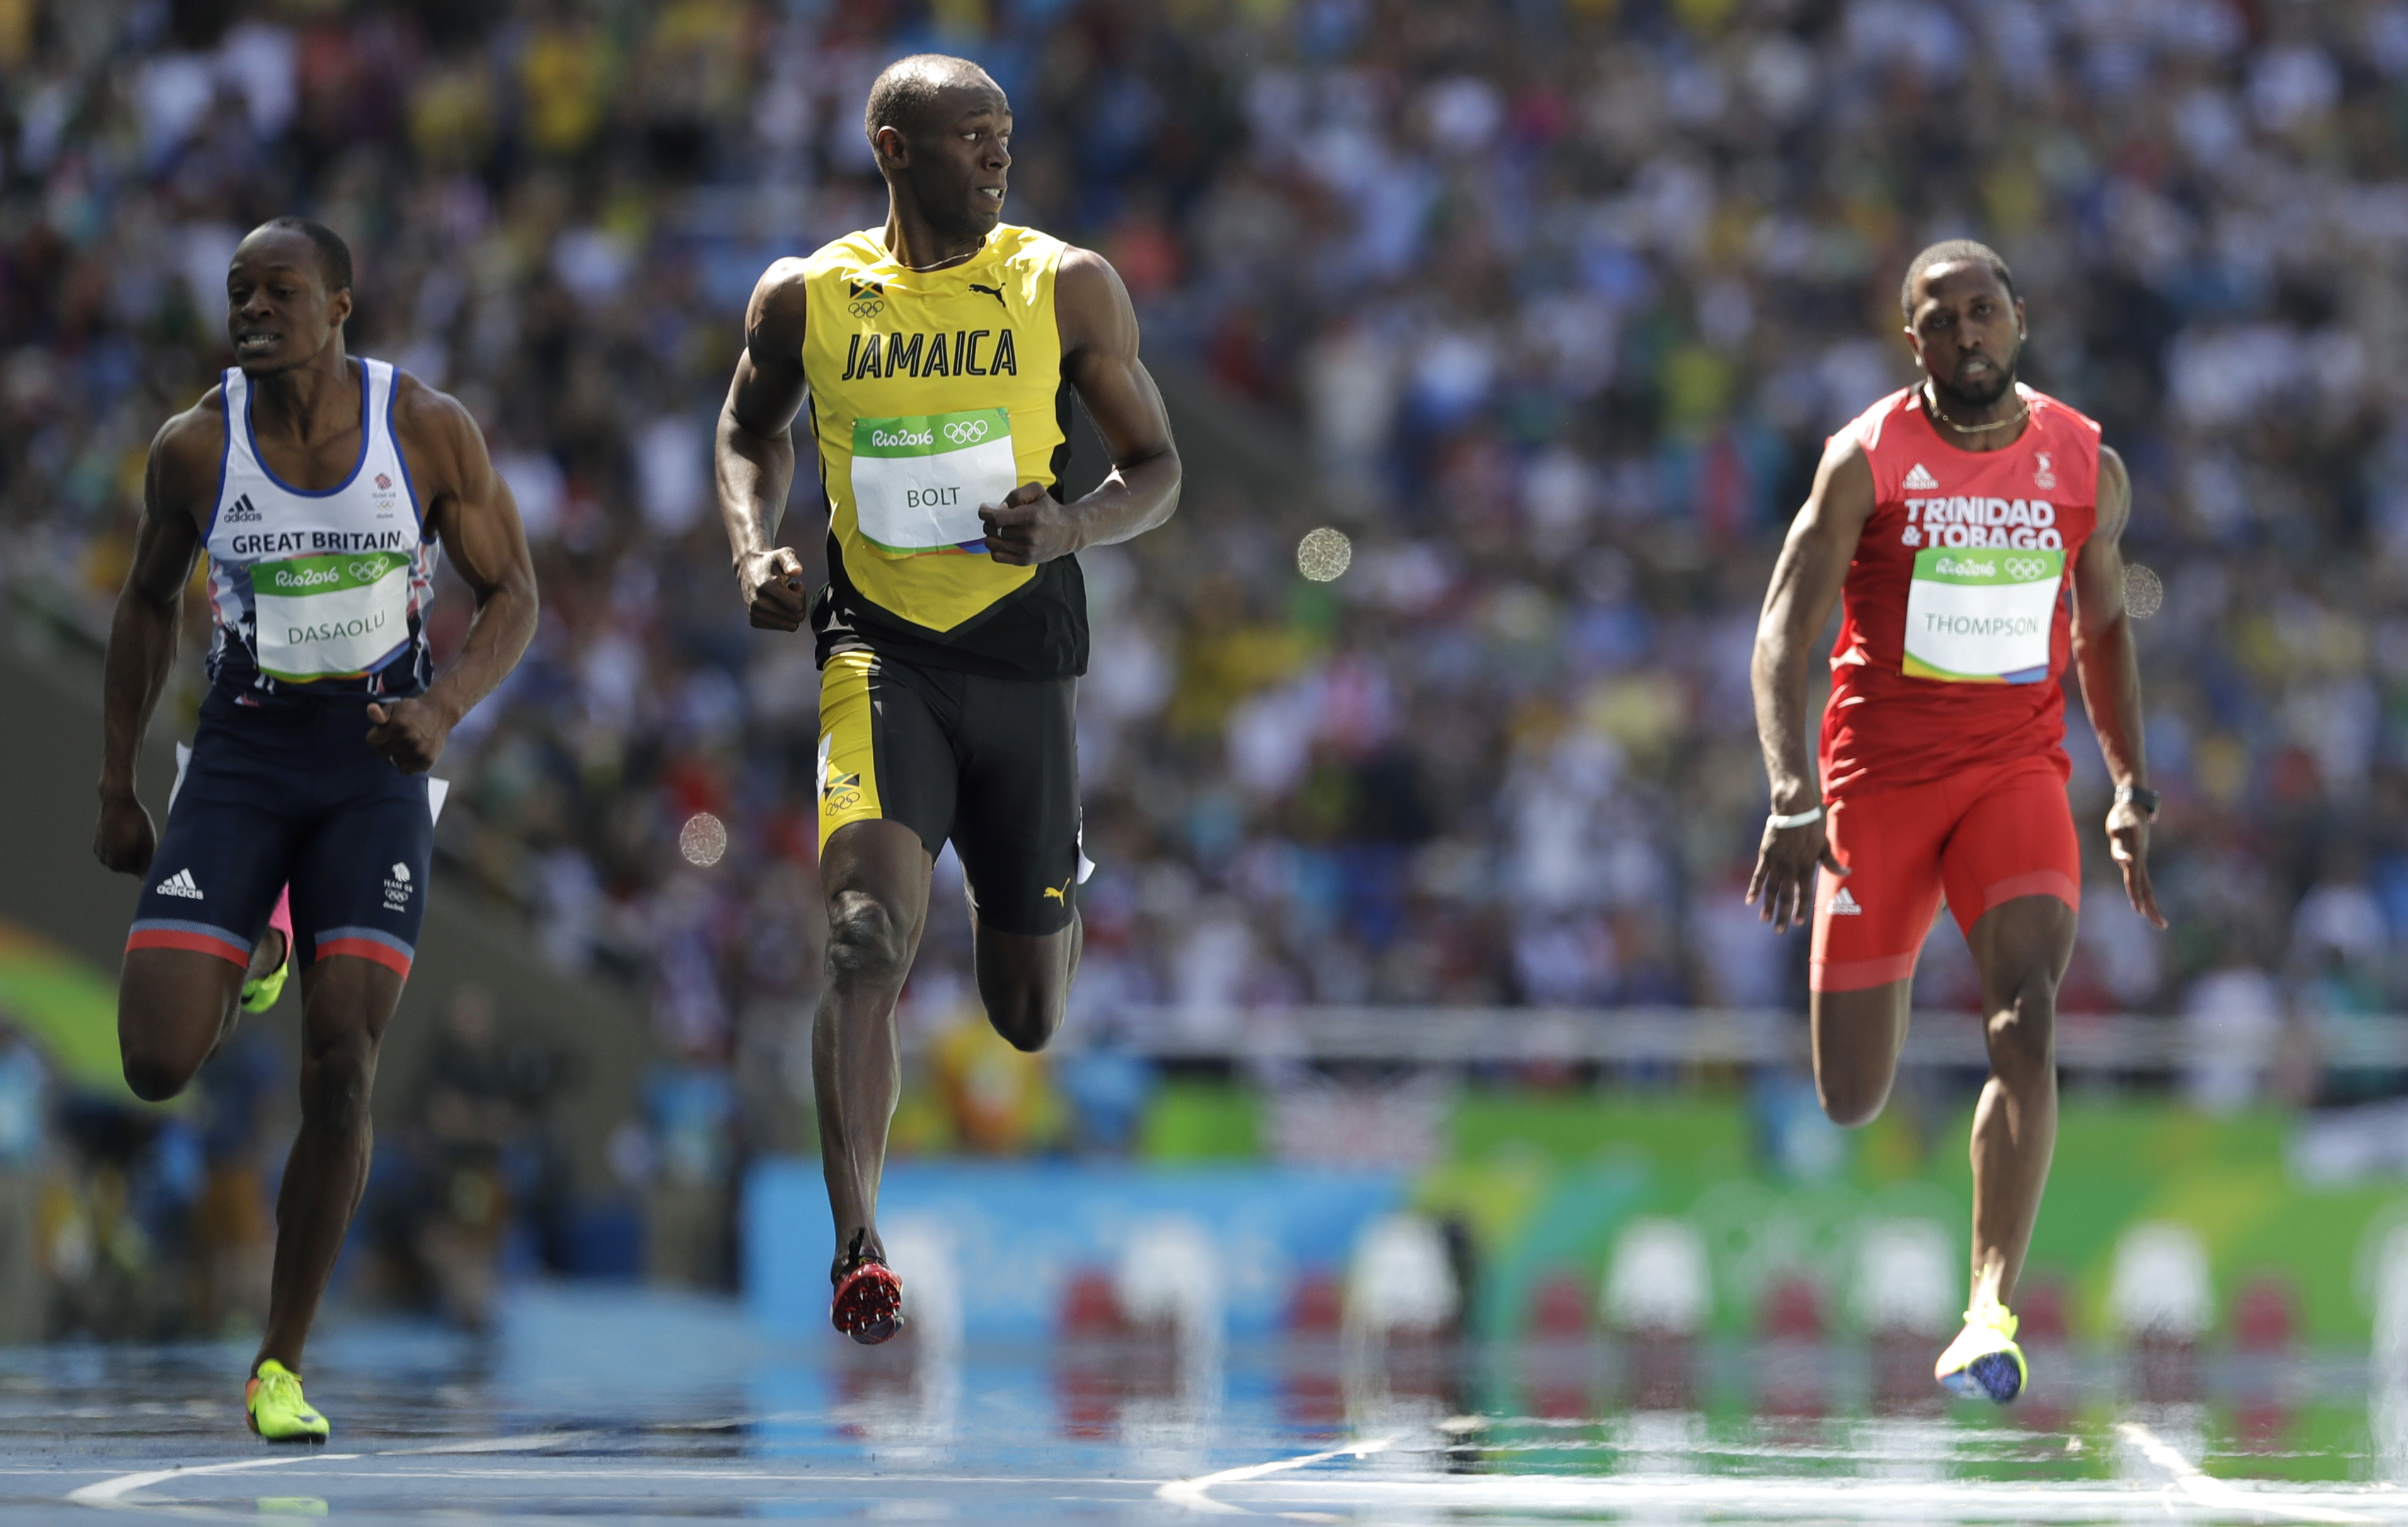 Jamaica's Usain Bolt, center, Trinidad and Tobago's Richard Thompson, right, and Britain's James Dasaolu compete in a men's 100-meter heat during the athletics competitions of the 2016 Summer Olympics at the Olympic stadium in Rio de Janeiro, Brazil,